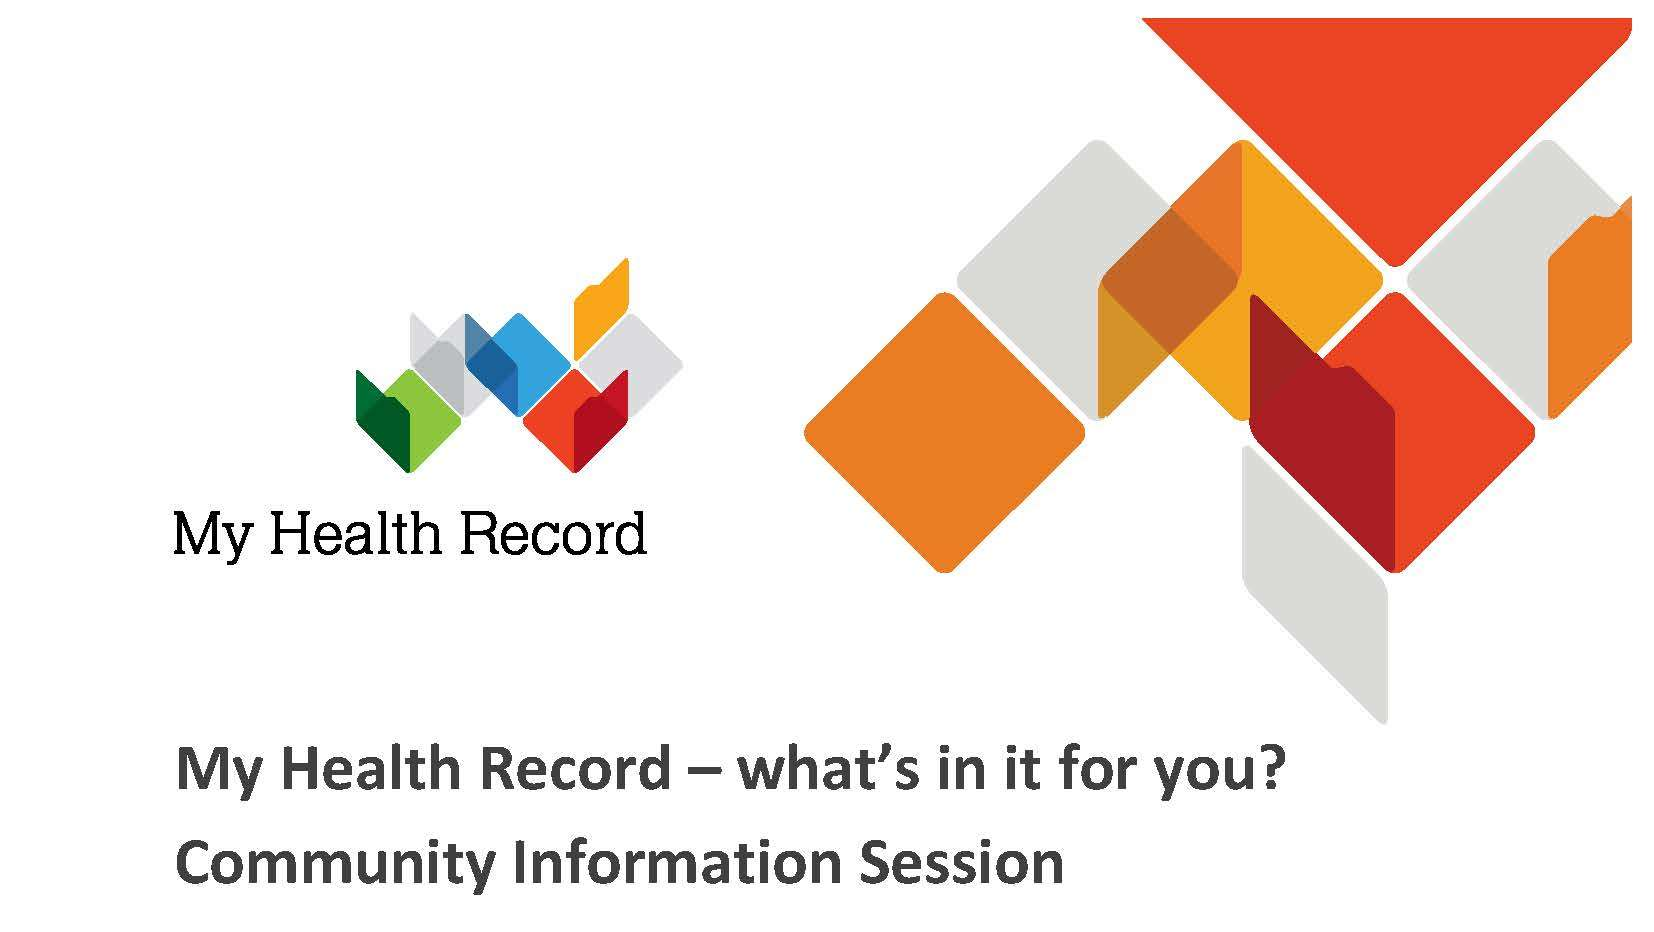 MY HEALTH RECORD - What's in ti for you?